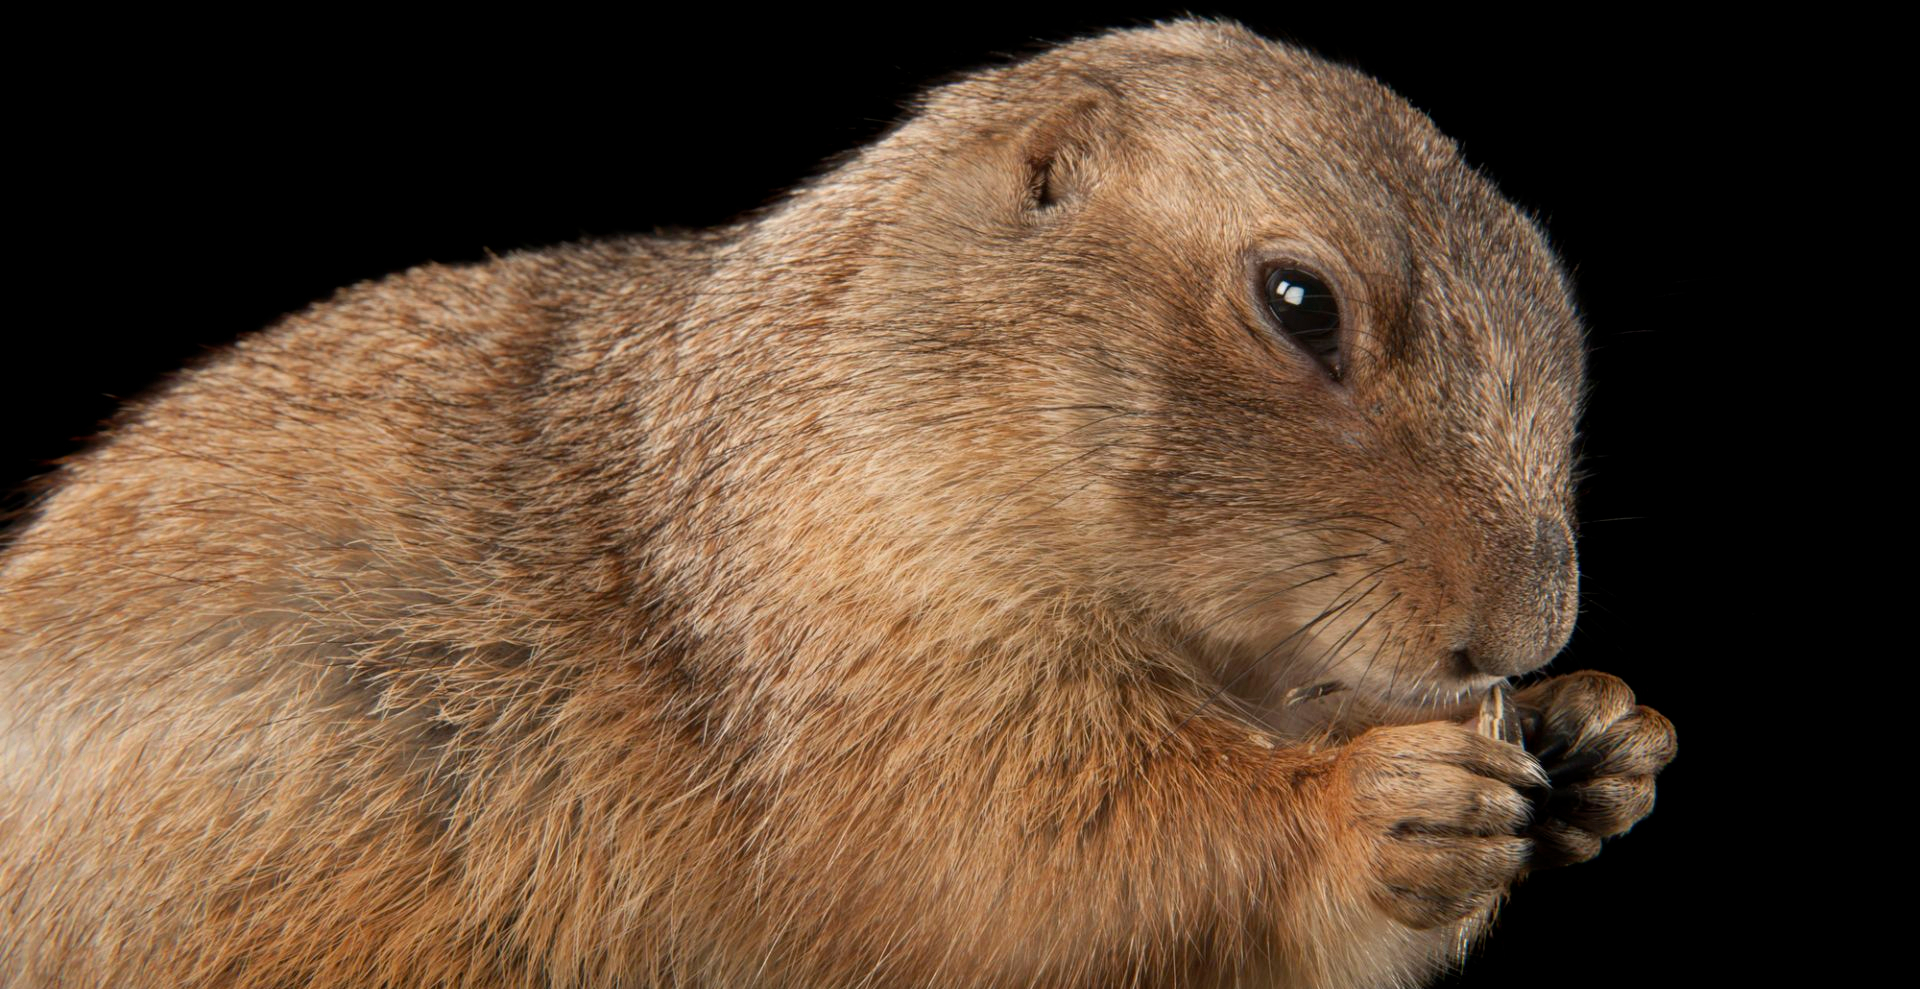 A black-tailed prairie dog (Cynomys ludovicianus) at Zoo Atlanta.